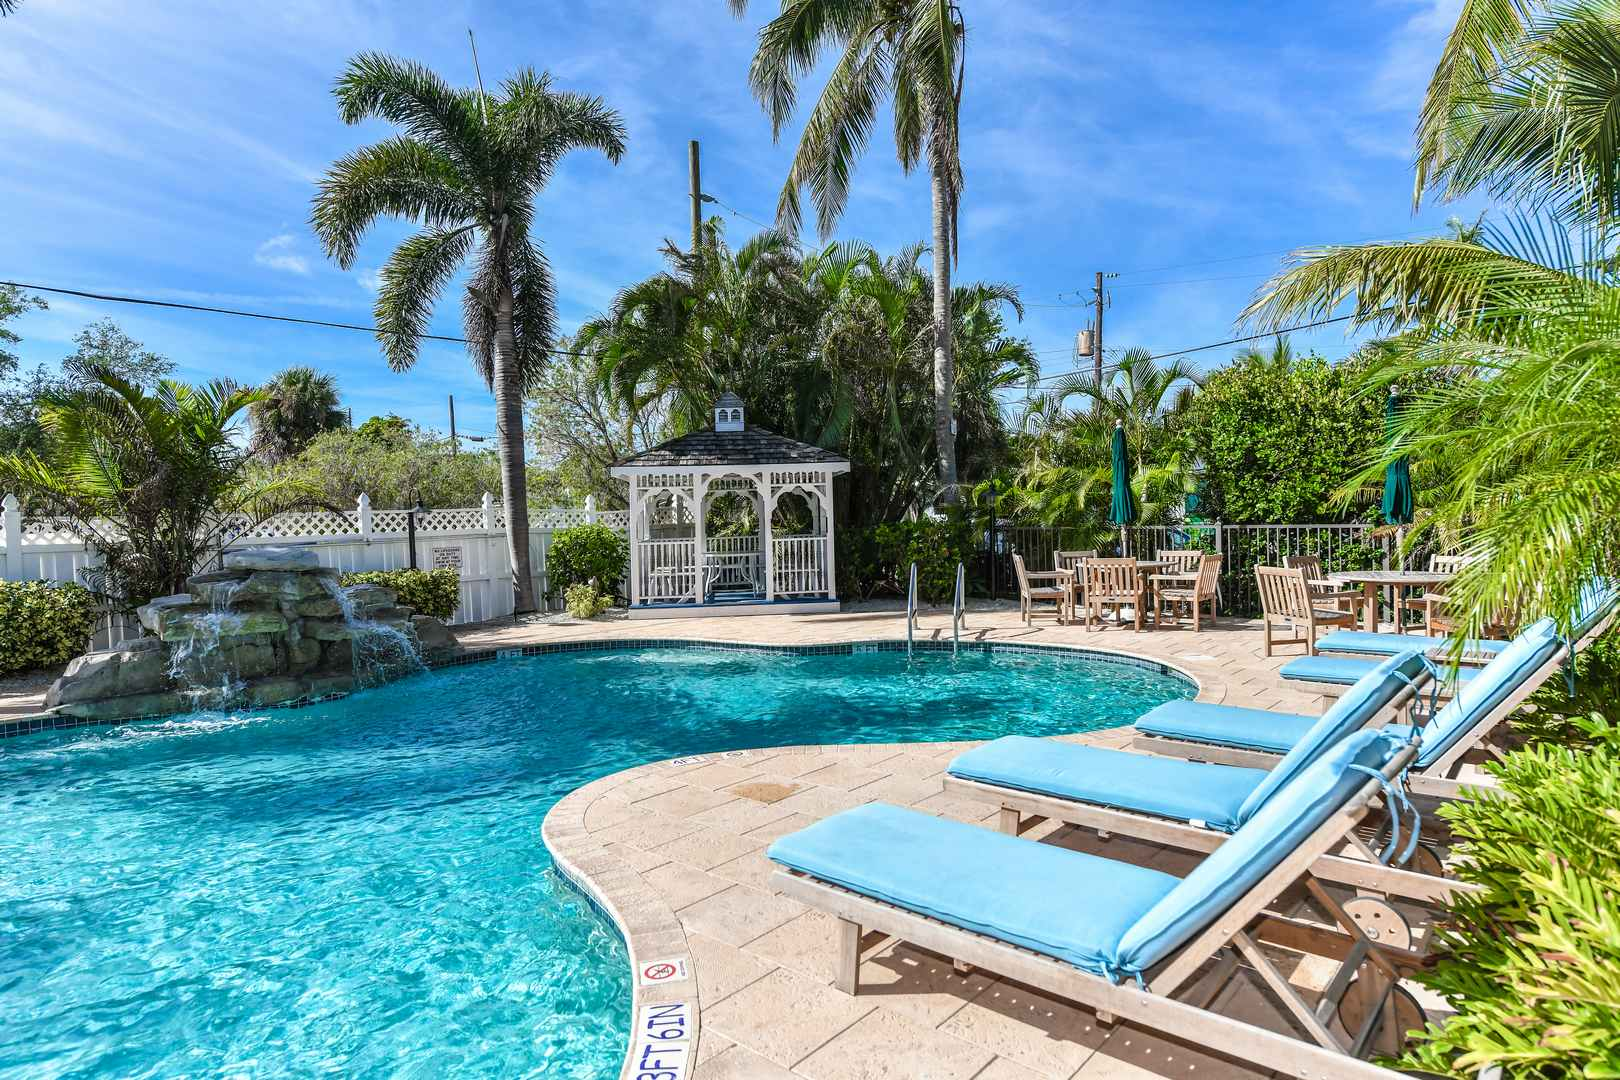 The Keys House Pool